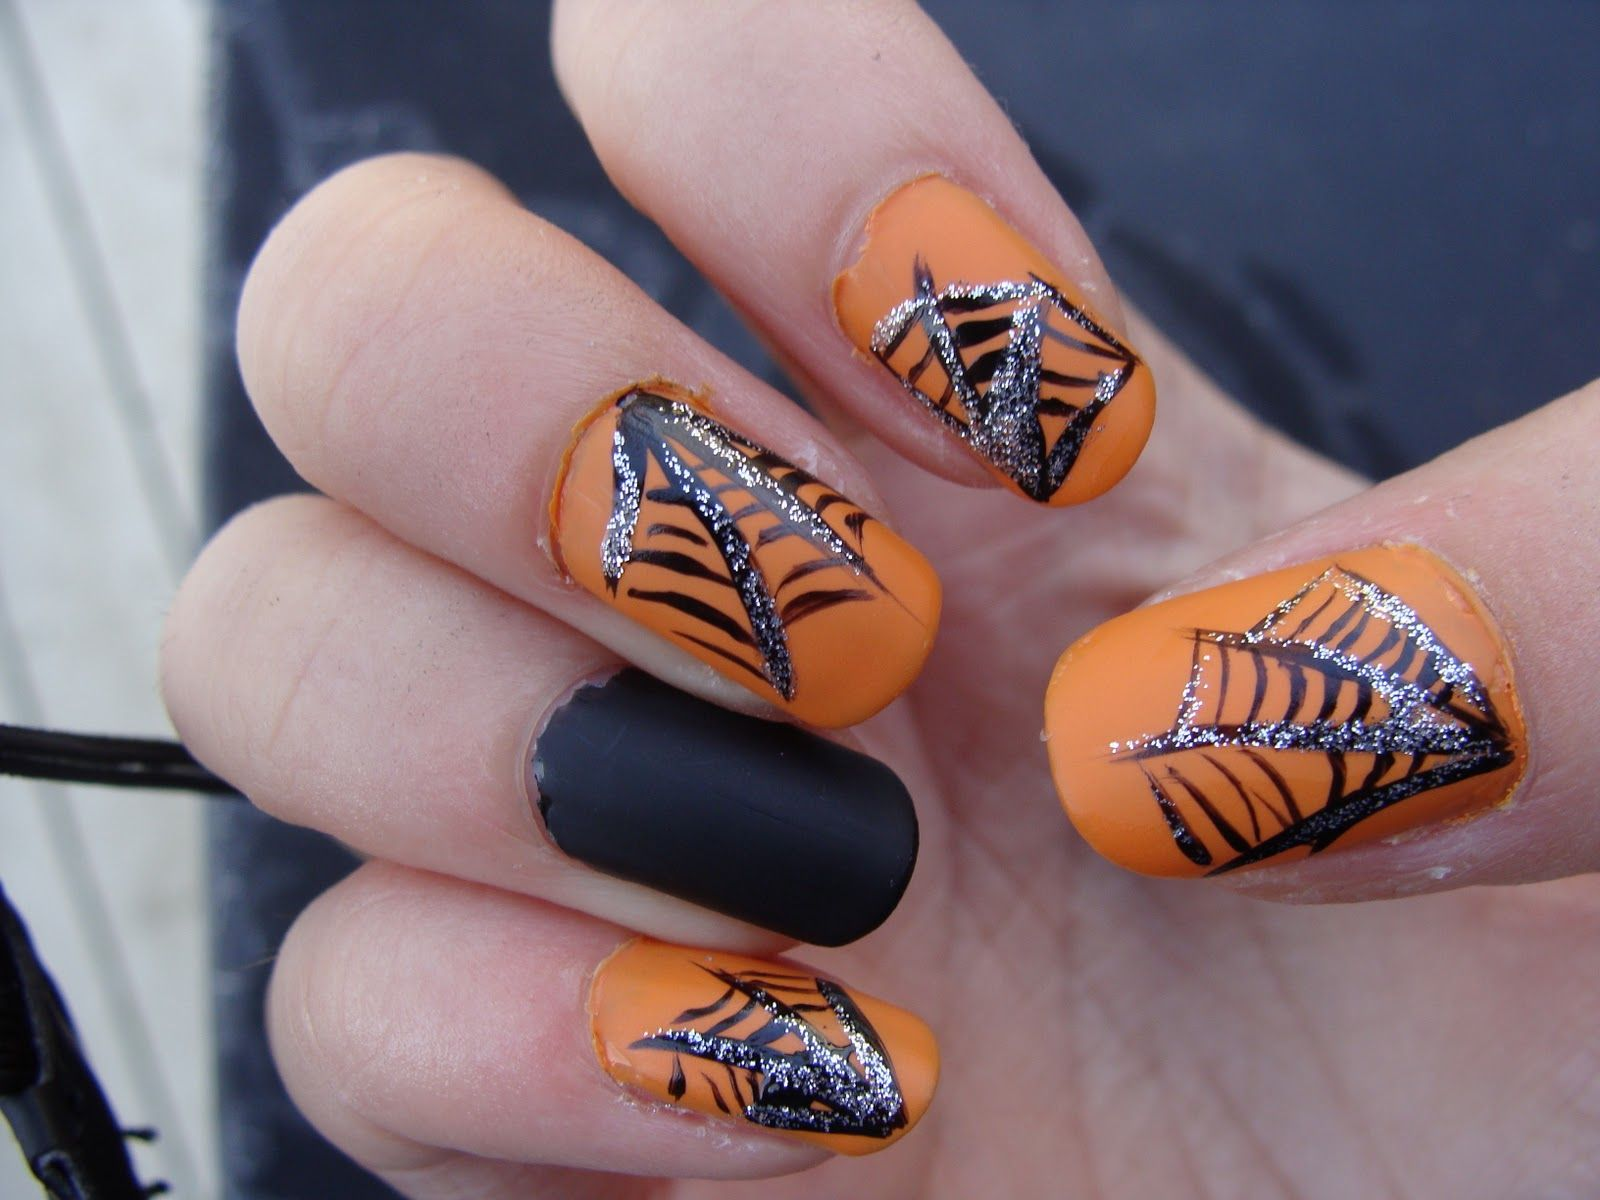 black, orange, silver | Halloween nails, Nails, Black ...